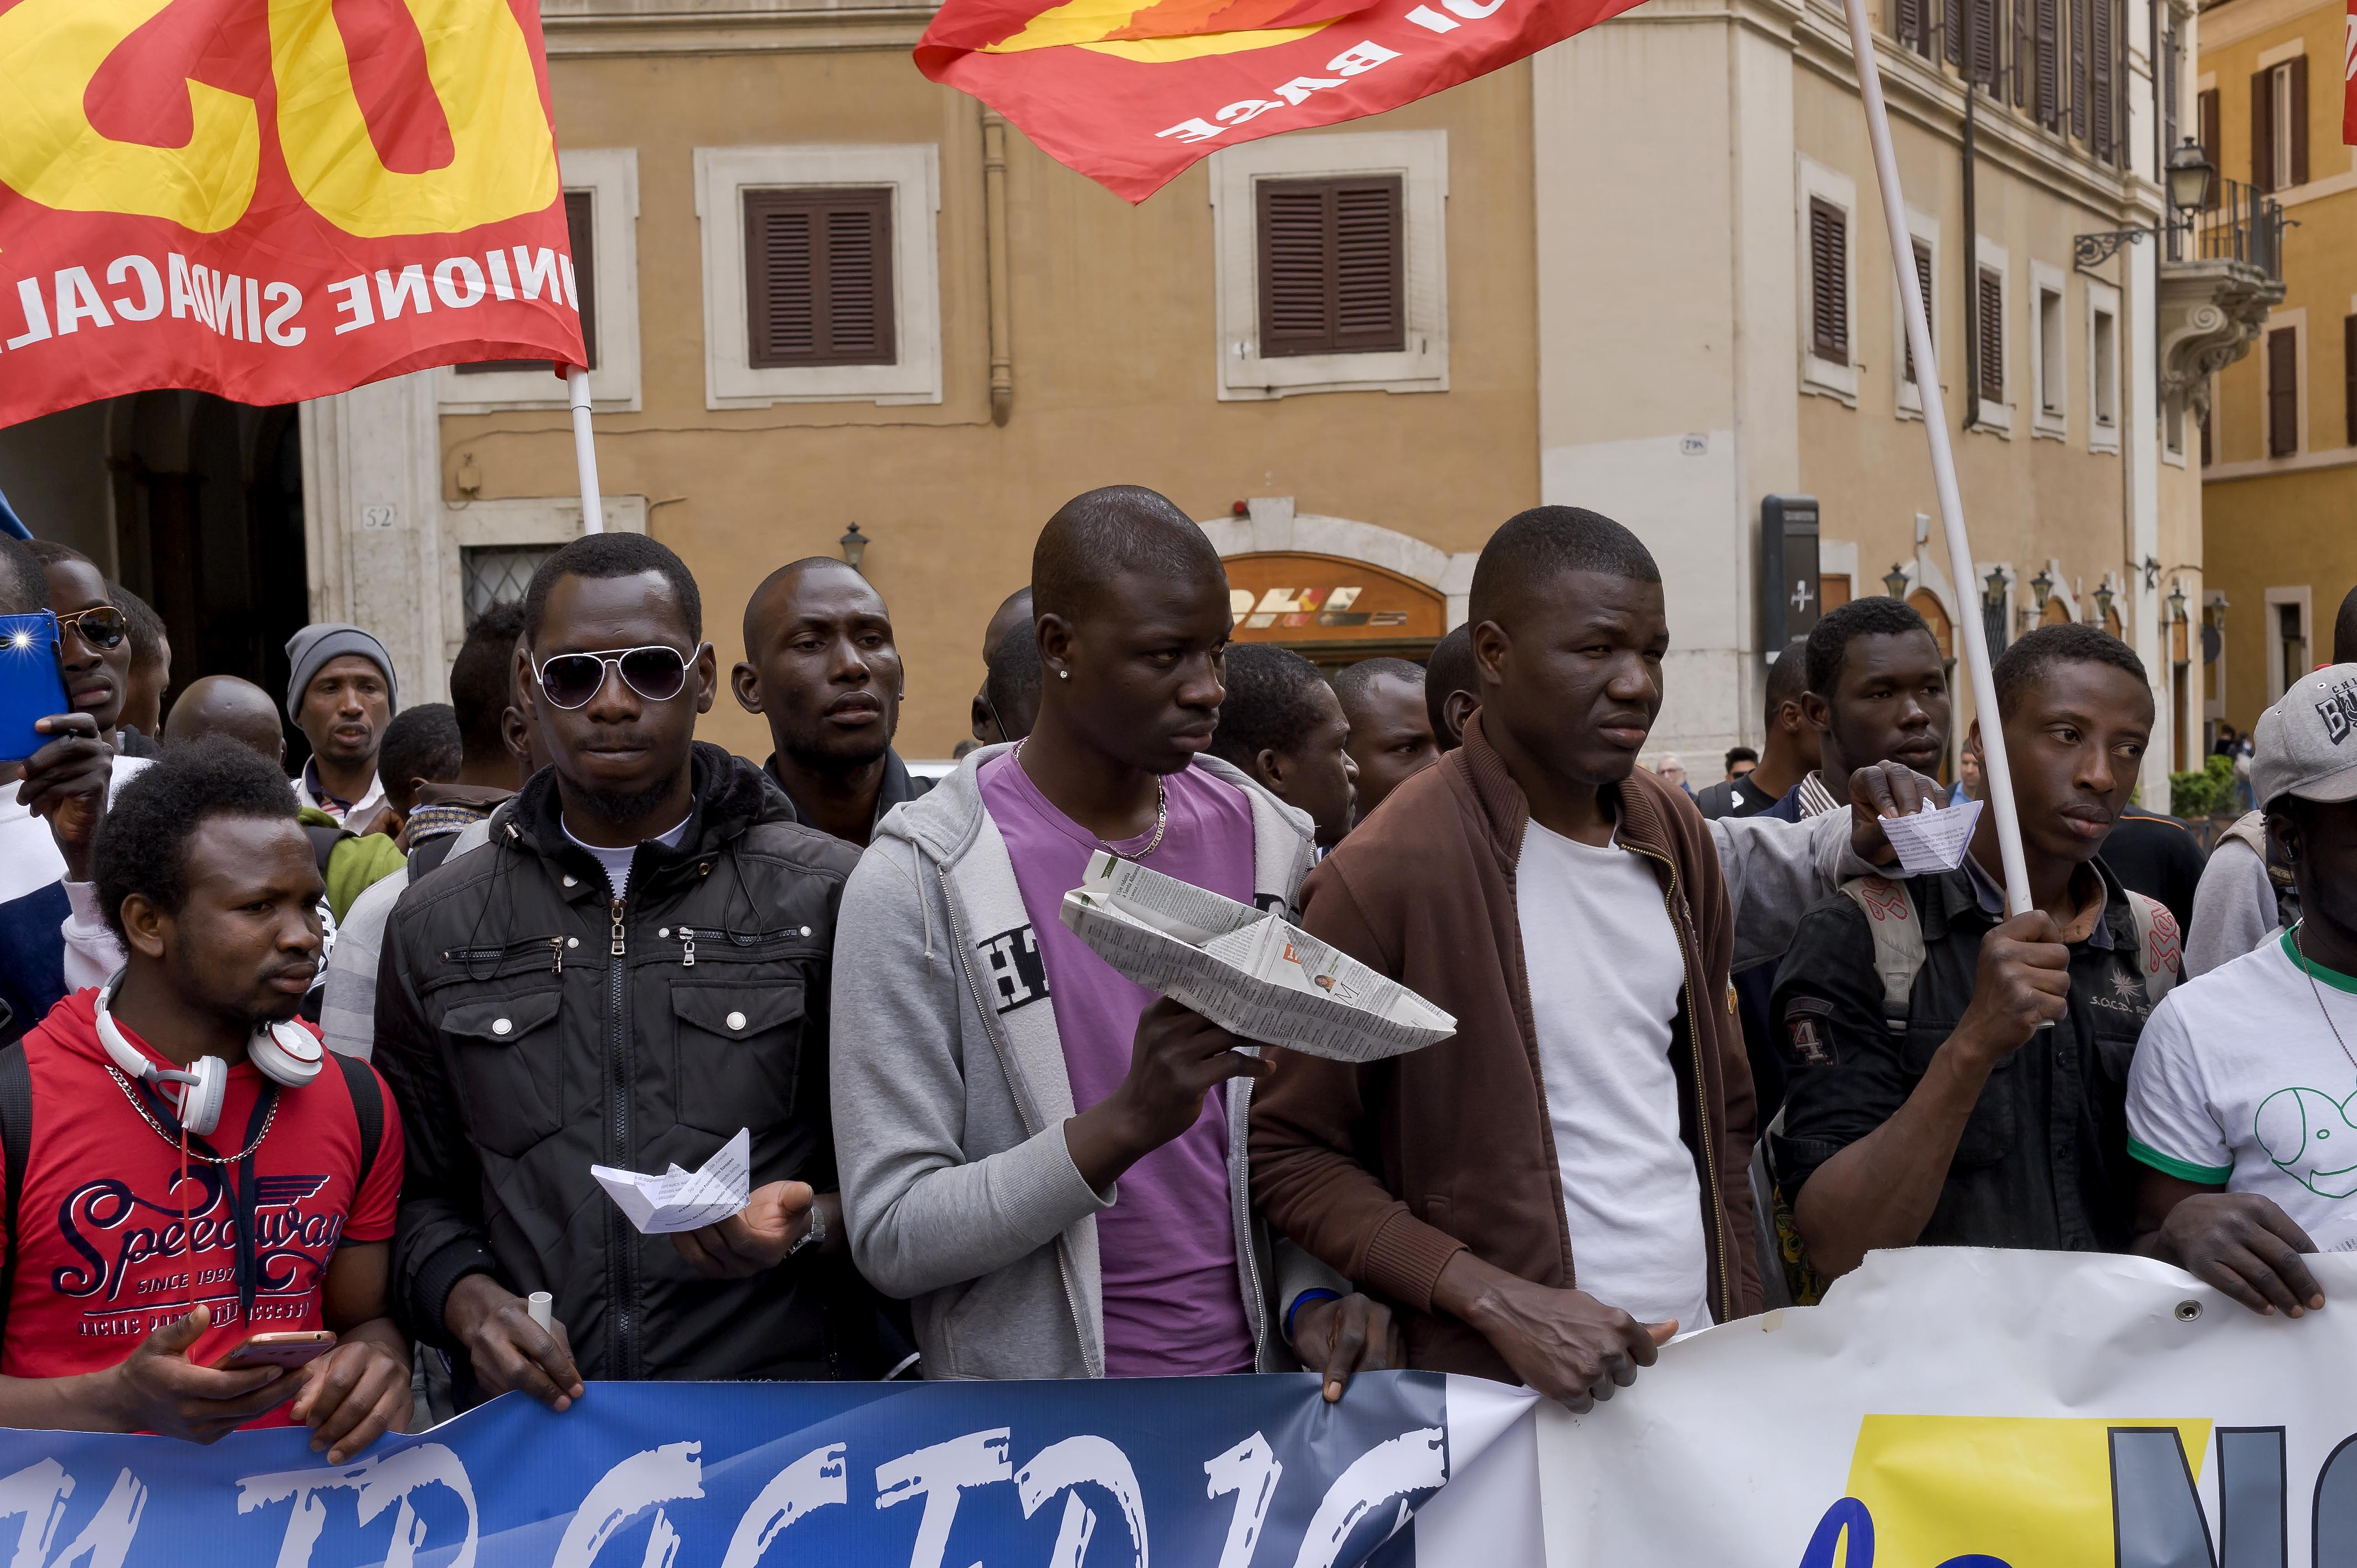 Crowds joined a rally in Rome's Piazza Montecitorio in the aftermath of a shipwreck that caused the deaths of hundreds of migrants, calling for a change in immigration policies and the right to freedom of movement in Europe. Photo by Stefano Montesi. Copyright Demotix